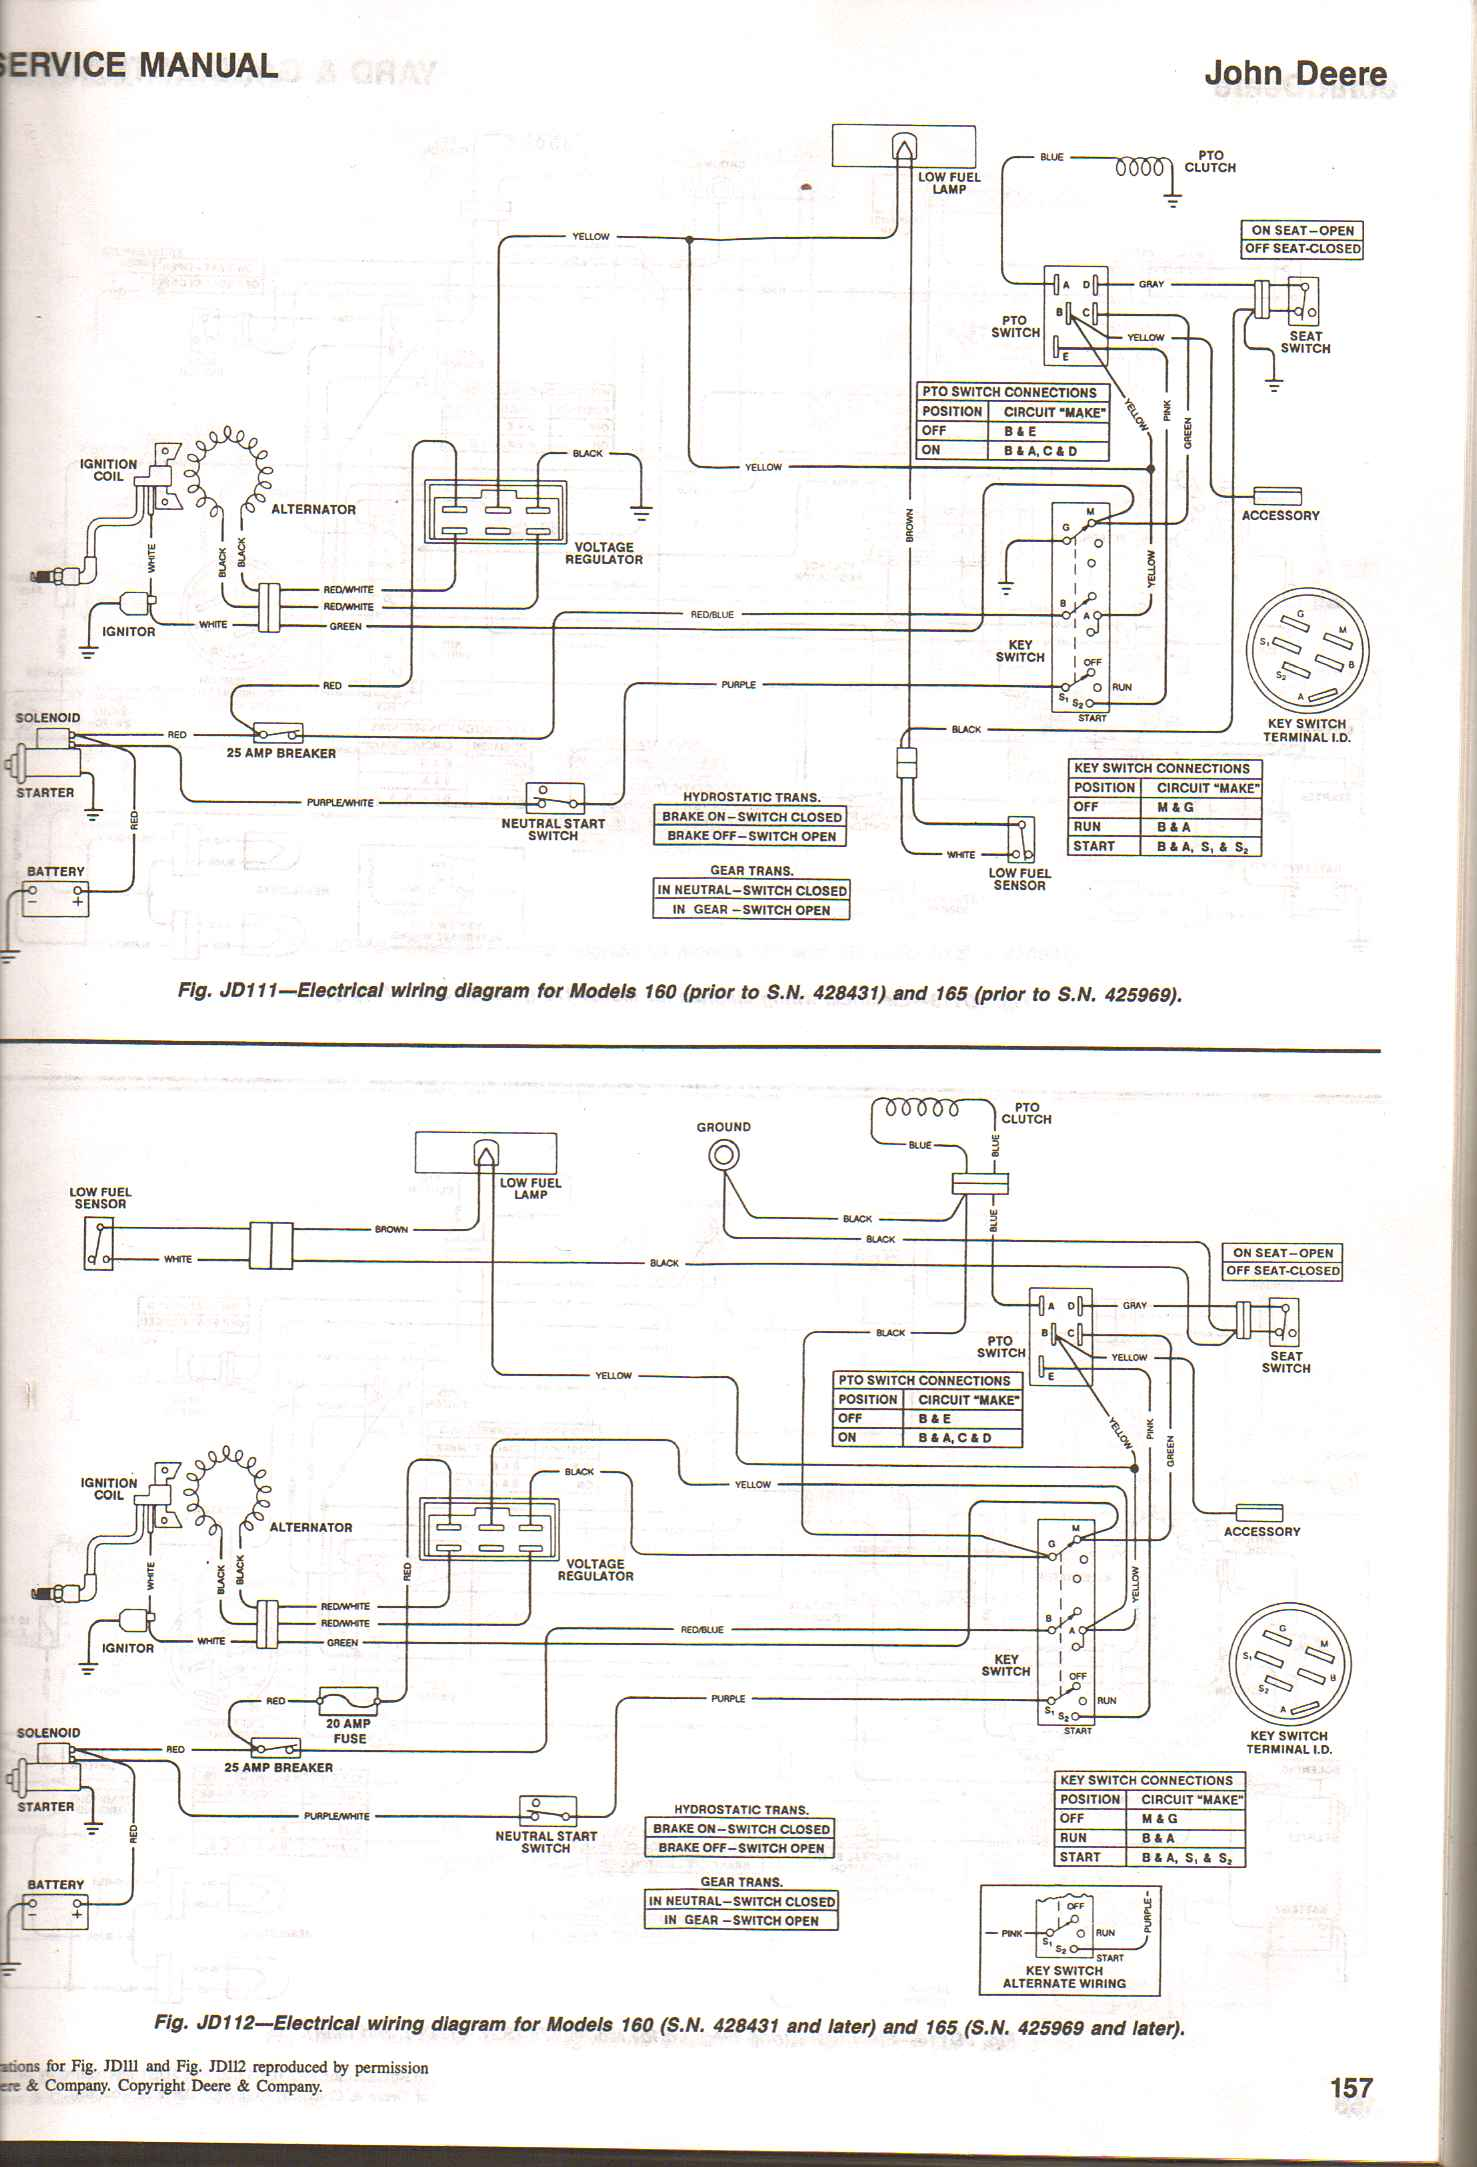 wiring diagram john deere 165 hydro trusted wiring diagram u2022 rh soulmatestyle co